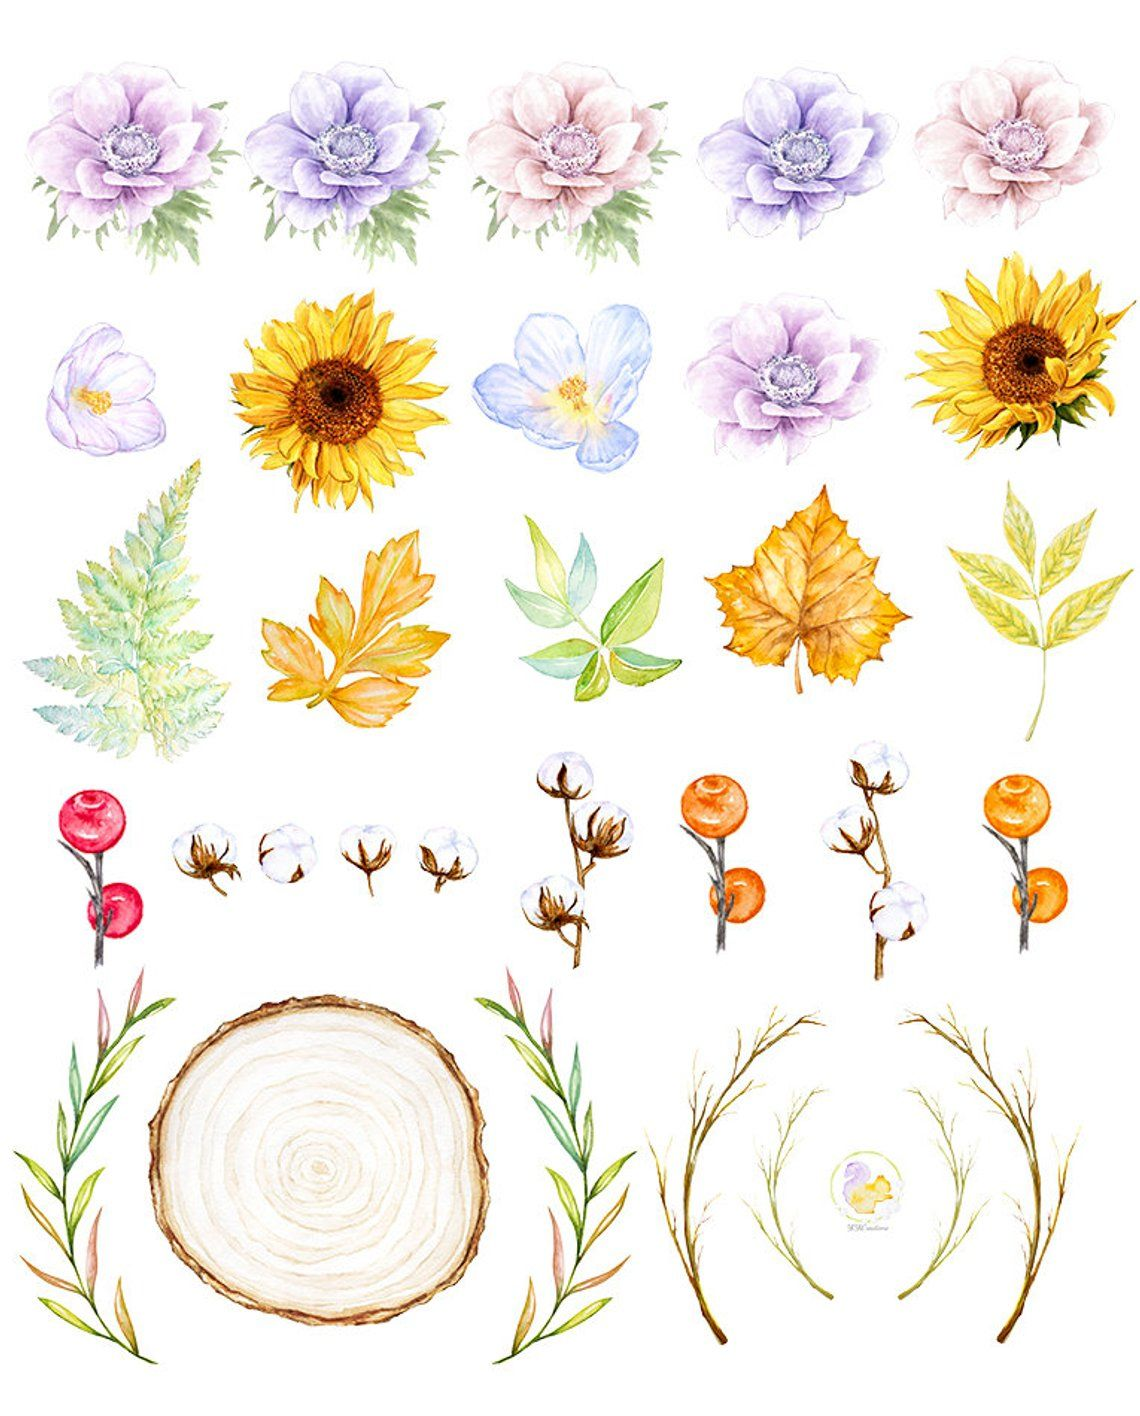 Forest Flower Clipart, Sunflower Wreath, Wedding Floral.